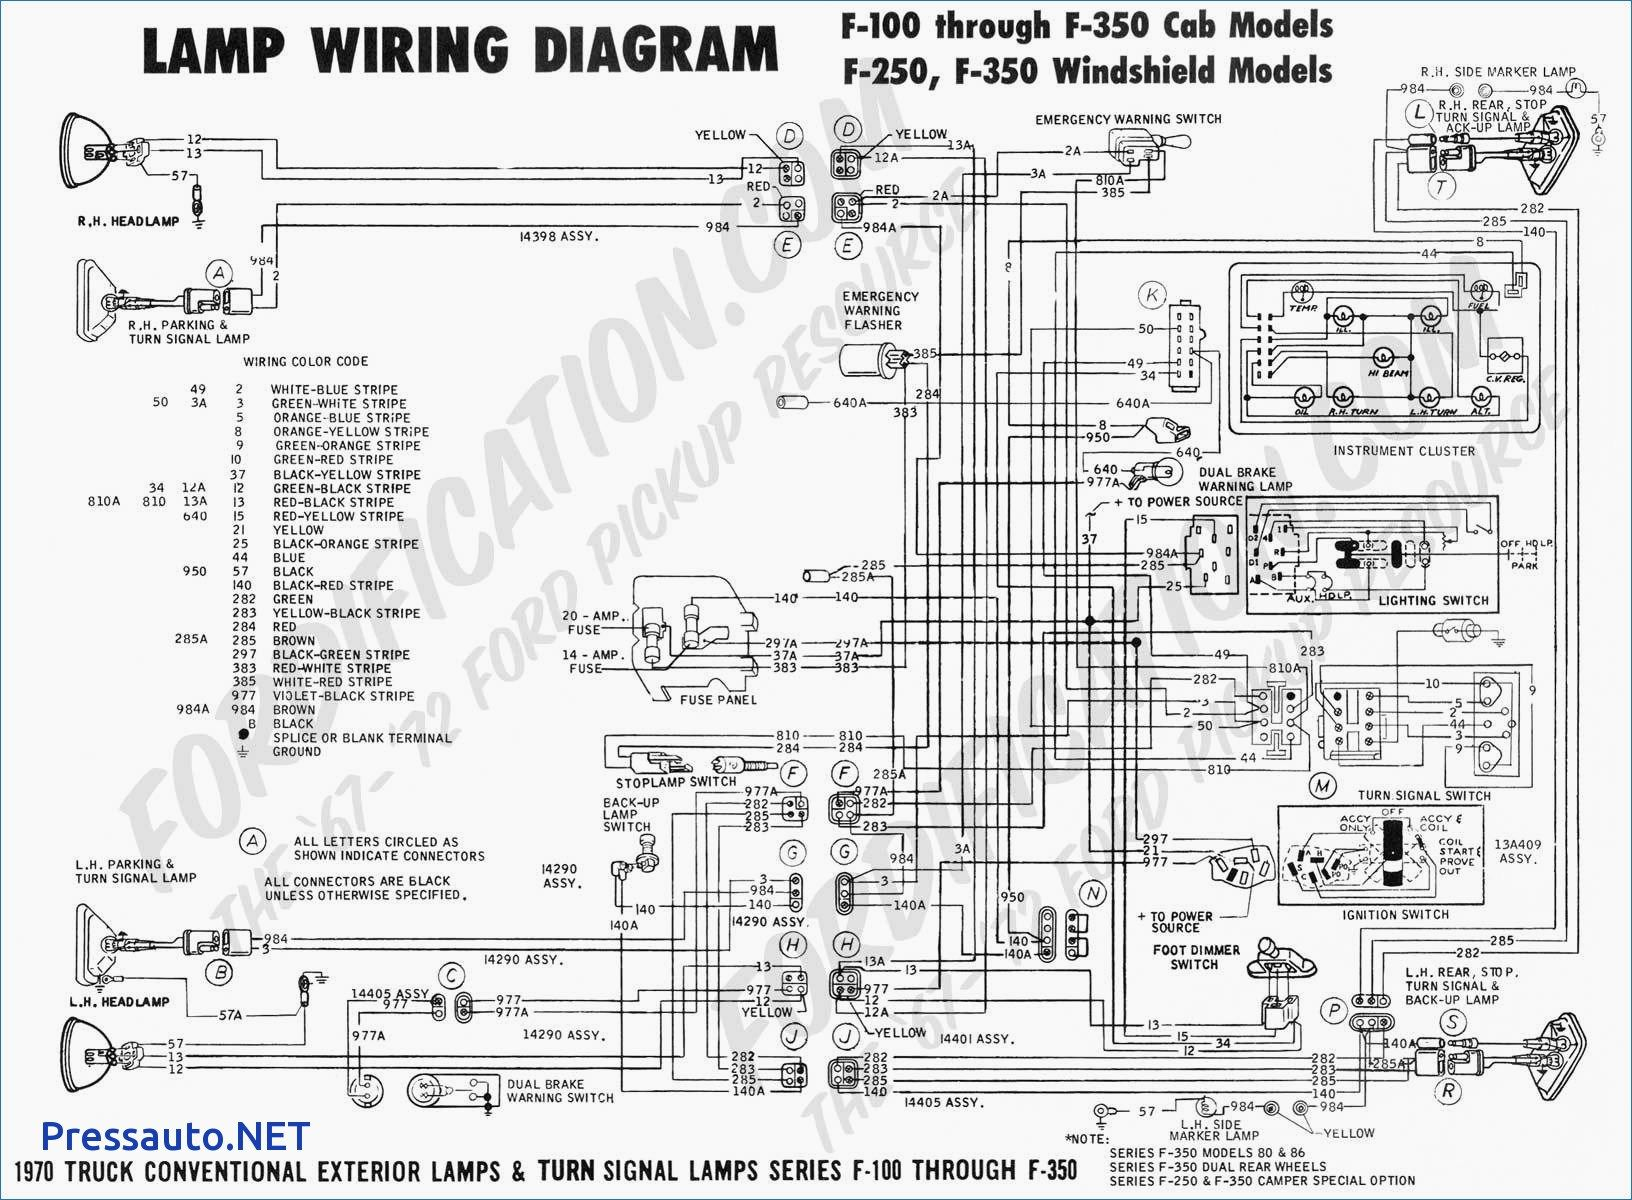 2002 F350 Turn Signal Wiring Diagram Diagrams Schematics Inside Ford F250 | Electrical  wiring diagram, Electrical diagram, Trailer wiring diagram | 1980 Ford Mustang Turn Signal Switch Wiring Diagram |  | Pinterest